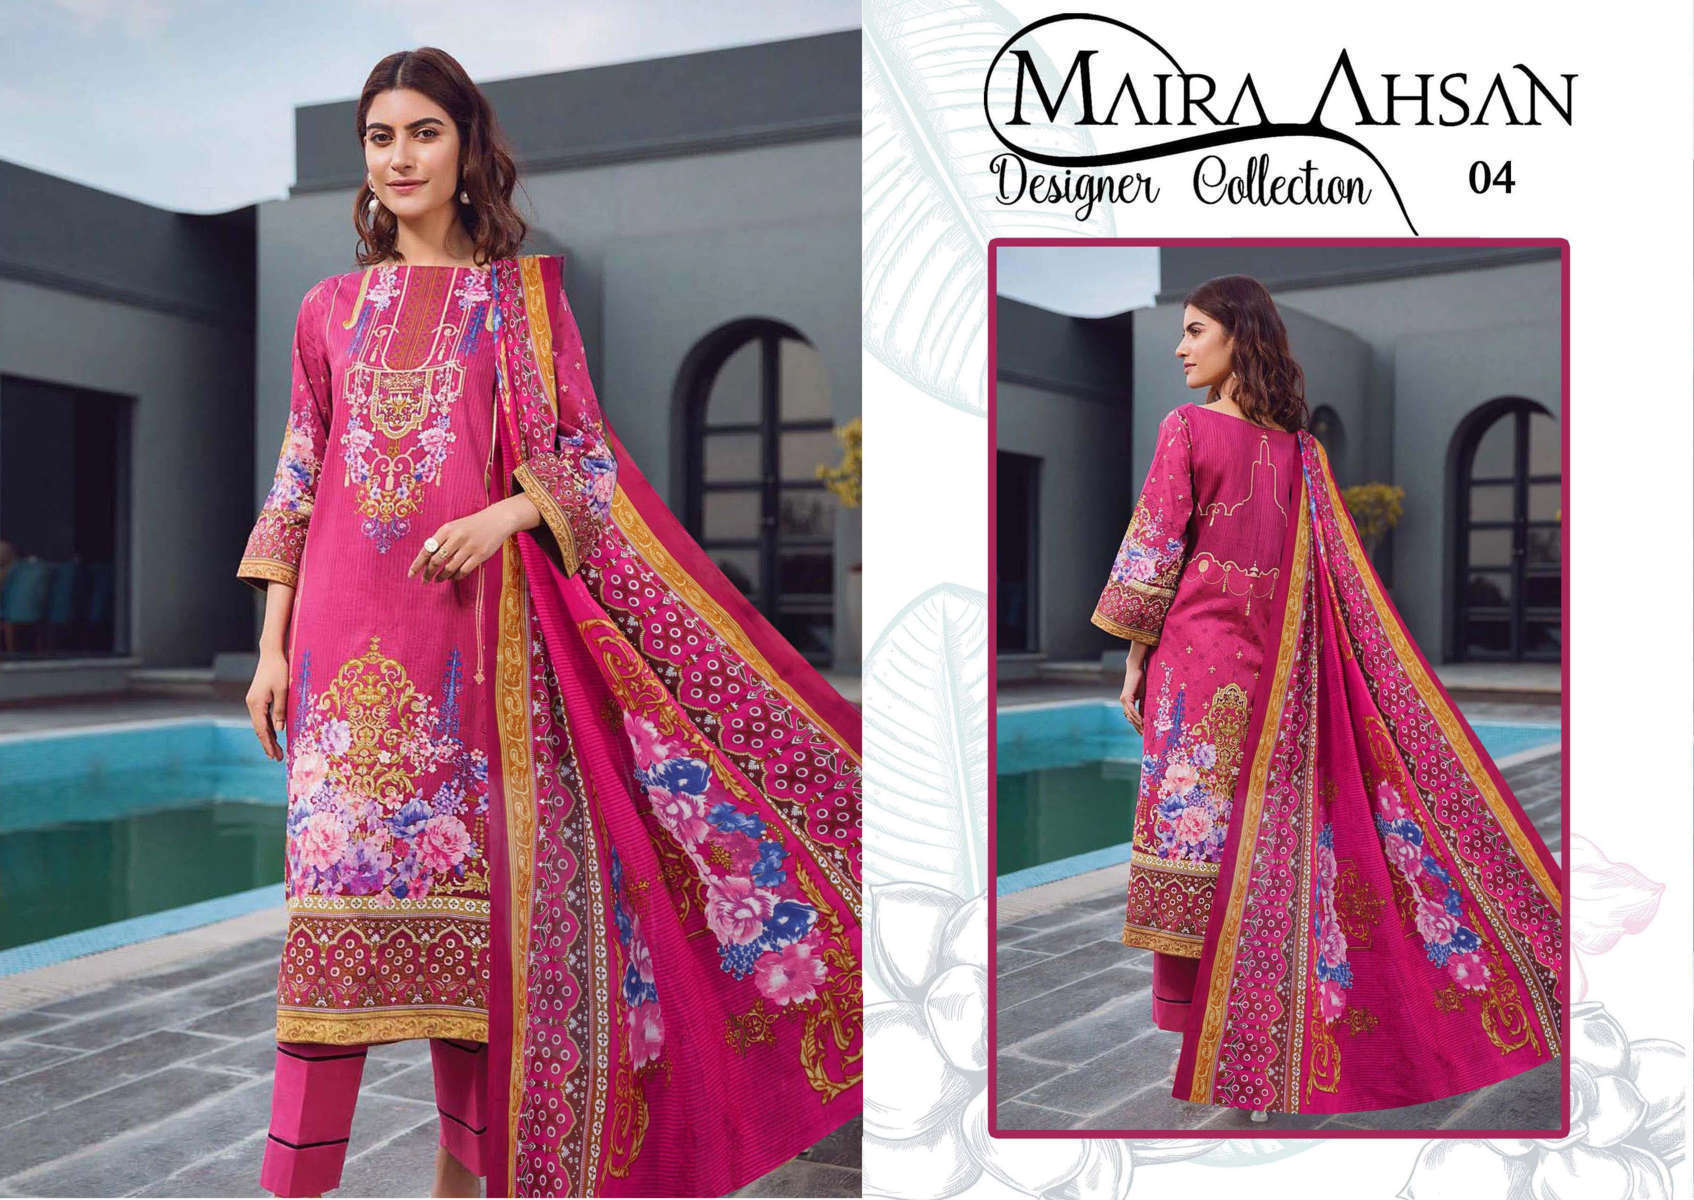 Maira Ahsan Designer Collection Vol 1 Salwar Suit Wholesale Catalog 10 Pcs 5 - Maira Ahsan Designer Collection Vol 1 Salwar Suit Wholesale Catalog 10 Pcs